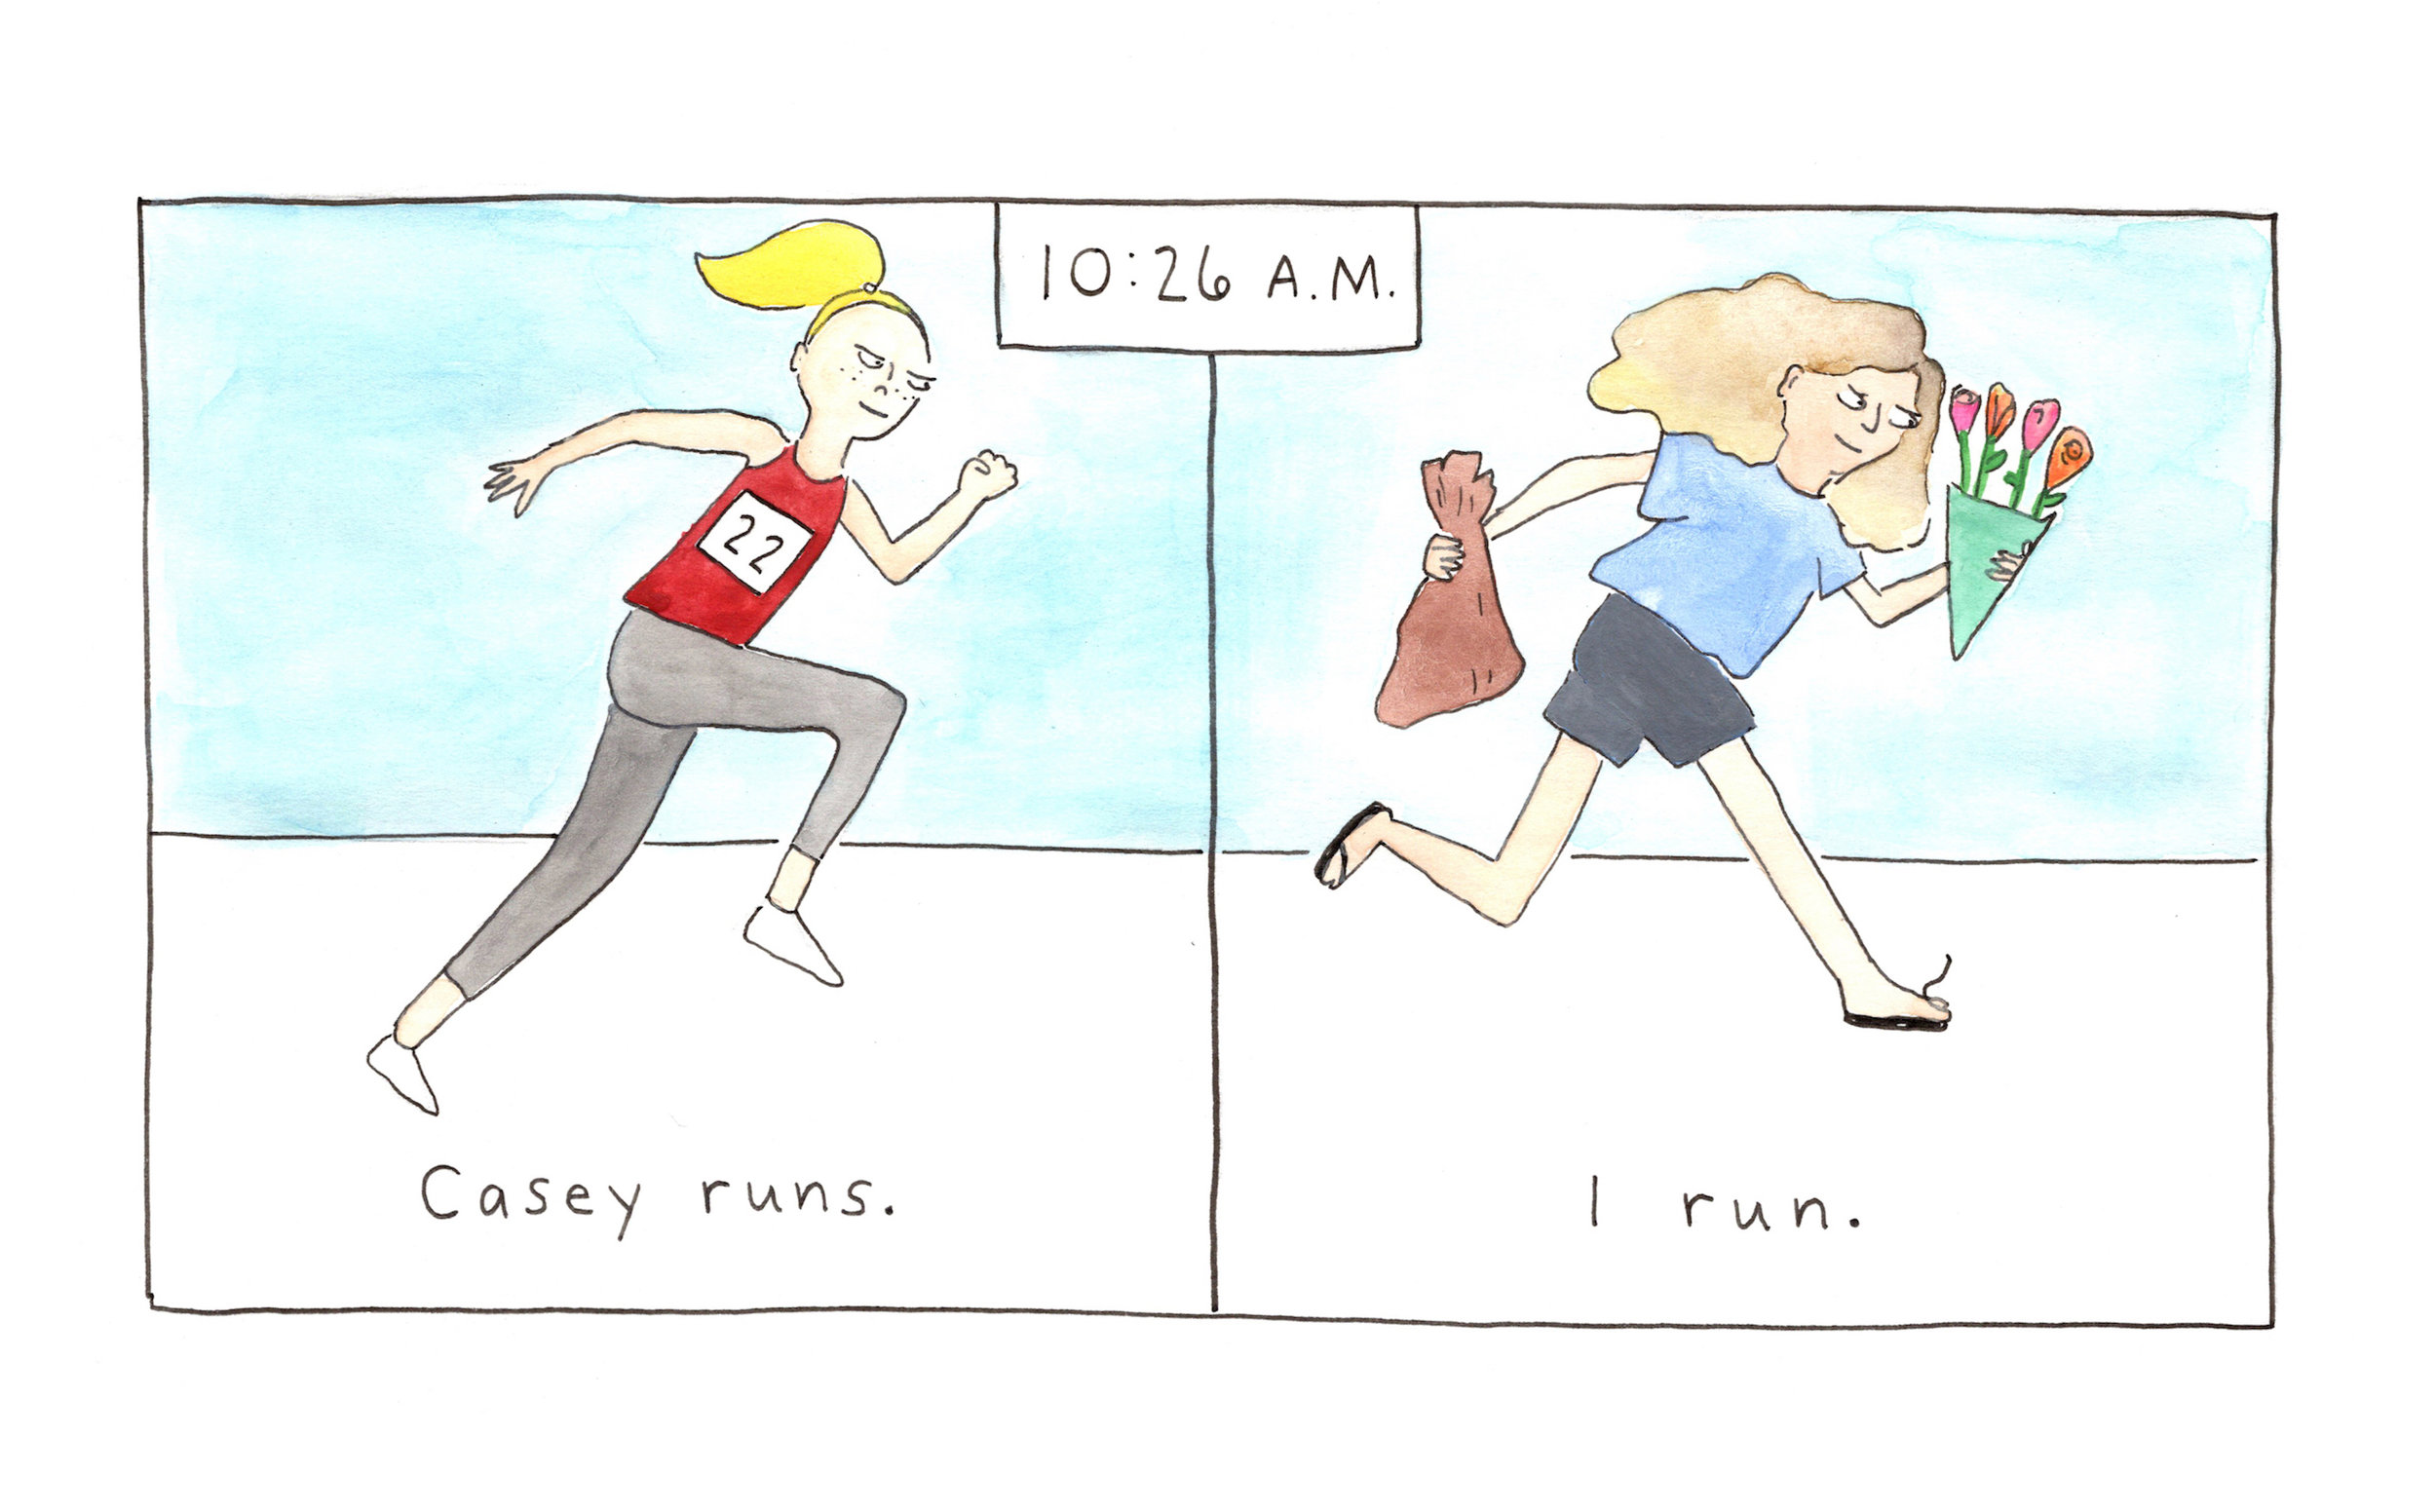 What I'll Be Doing While My Roommate Runs a Marathon - The New Yorker